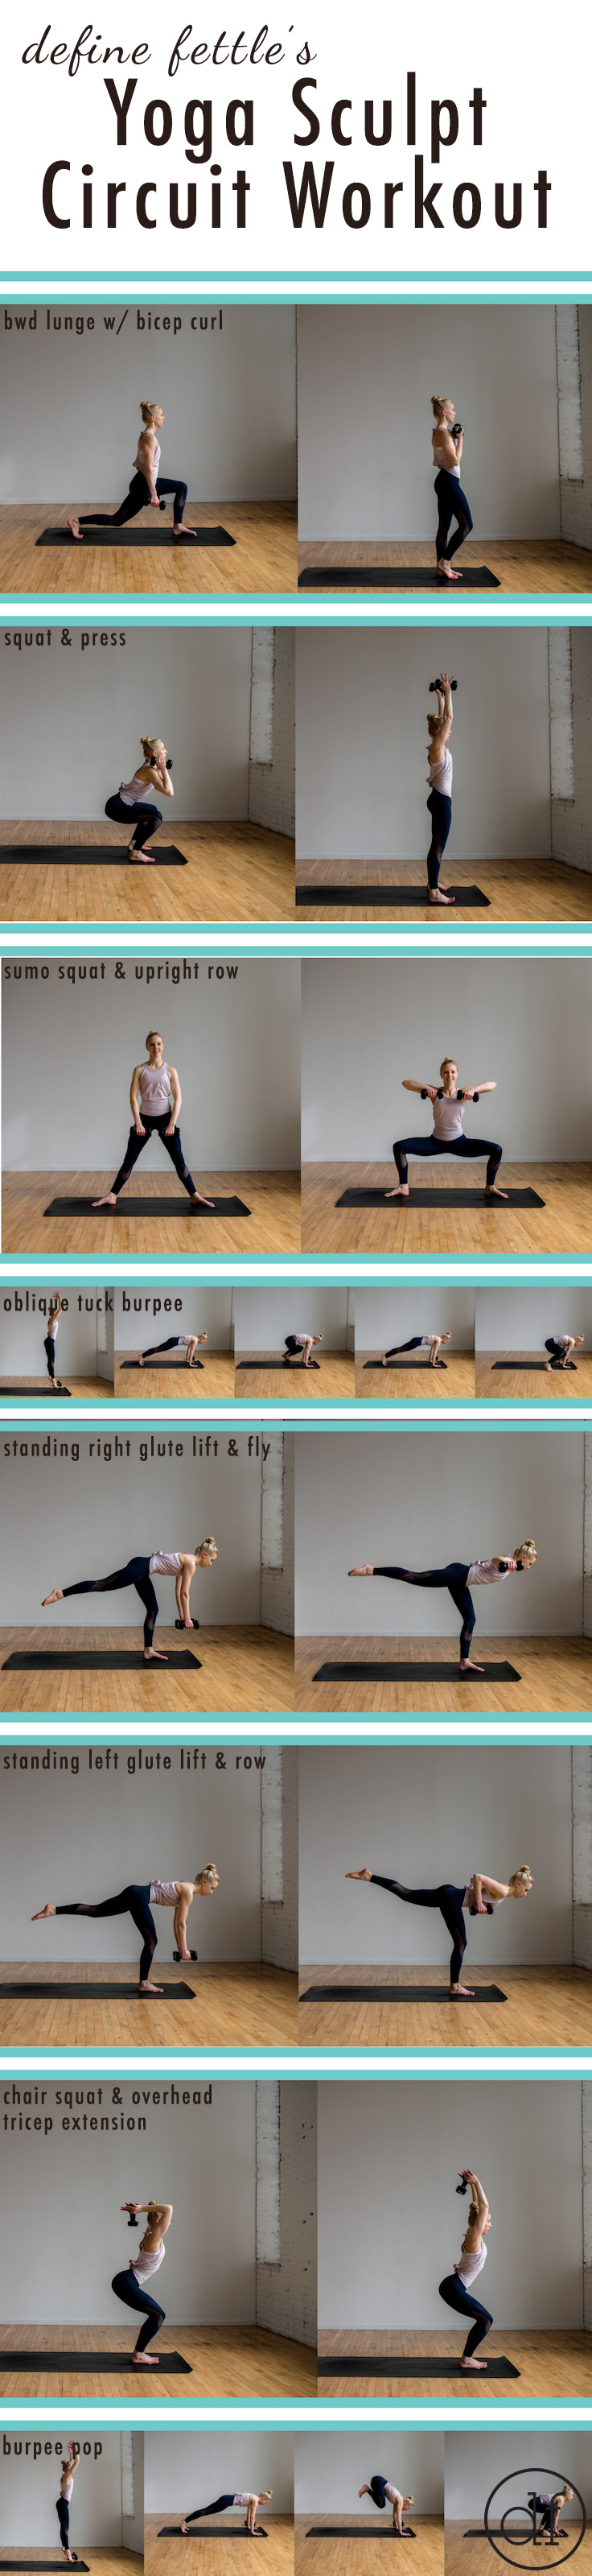 Yoga Sculpt, Yoga Sculpt Circuit Workout, Define Fettle, Fitness Blogger, Minneapolis, Fitness, Group Fitness, Burpees, Dumbbell, Home Workout, 30 Minute Workout